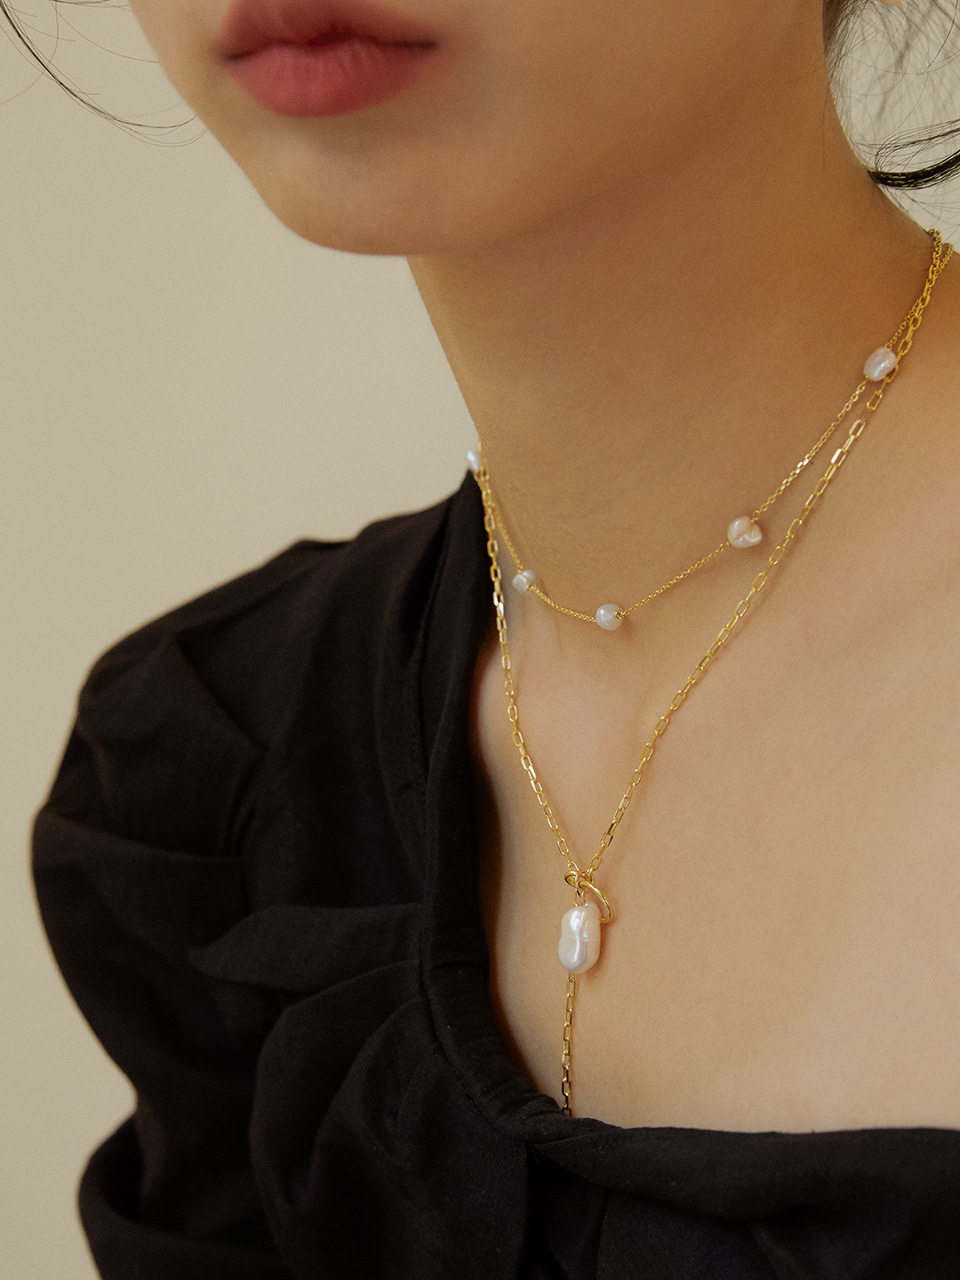 Ring&pearl necklace(링&펄목걸이)